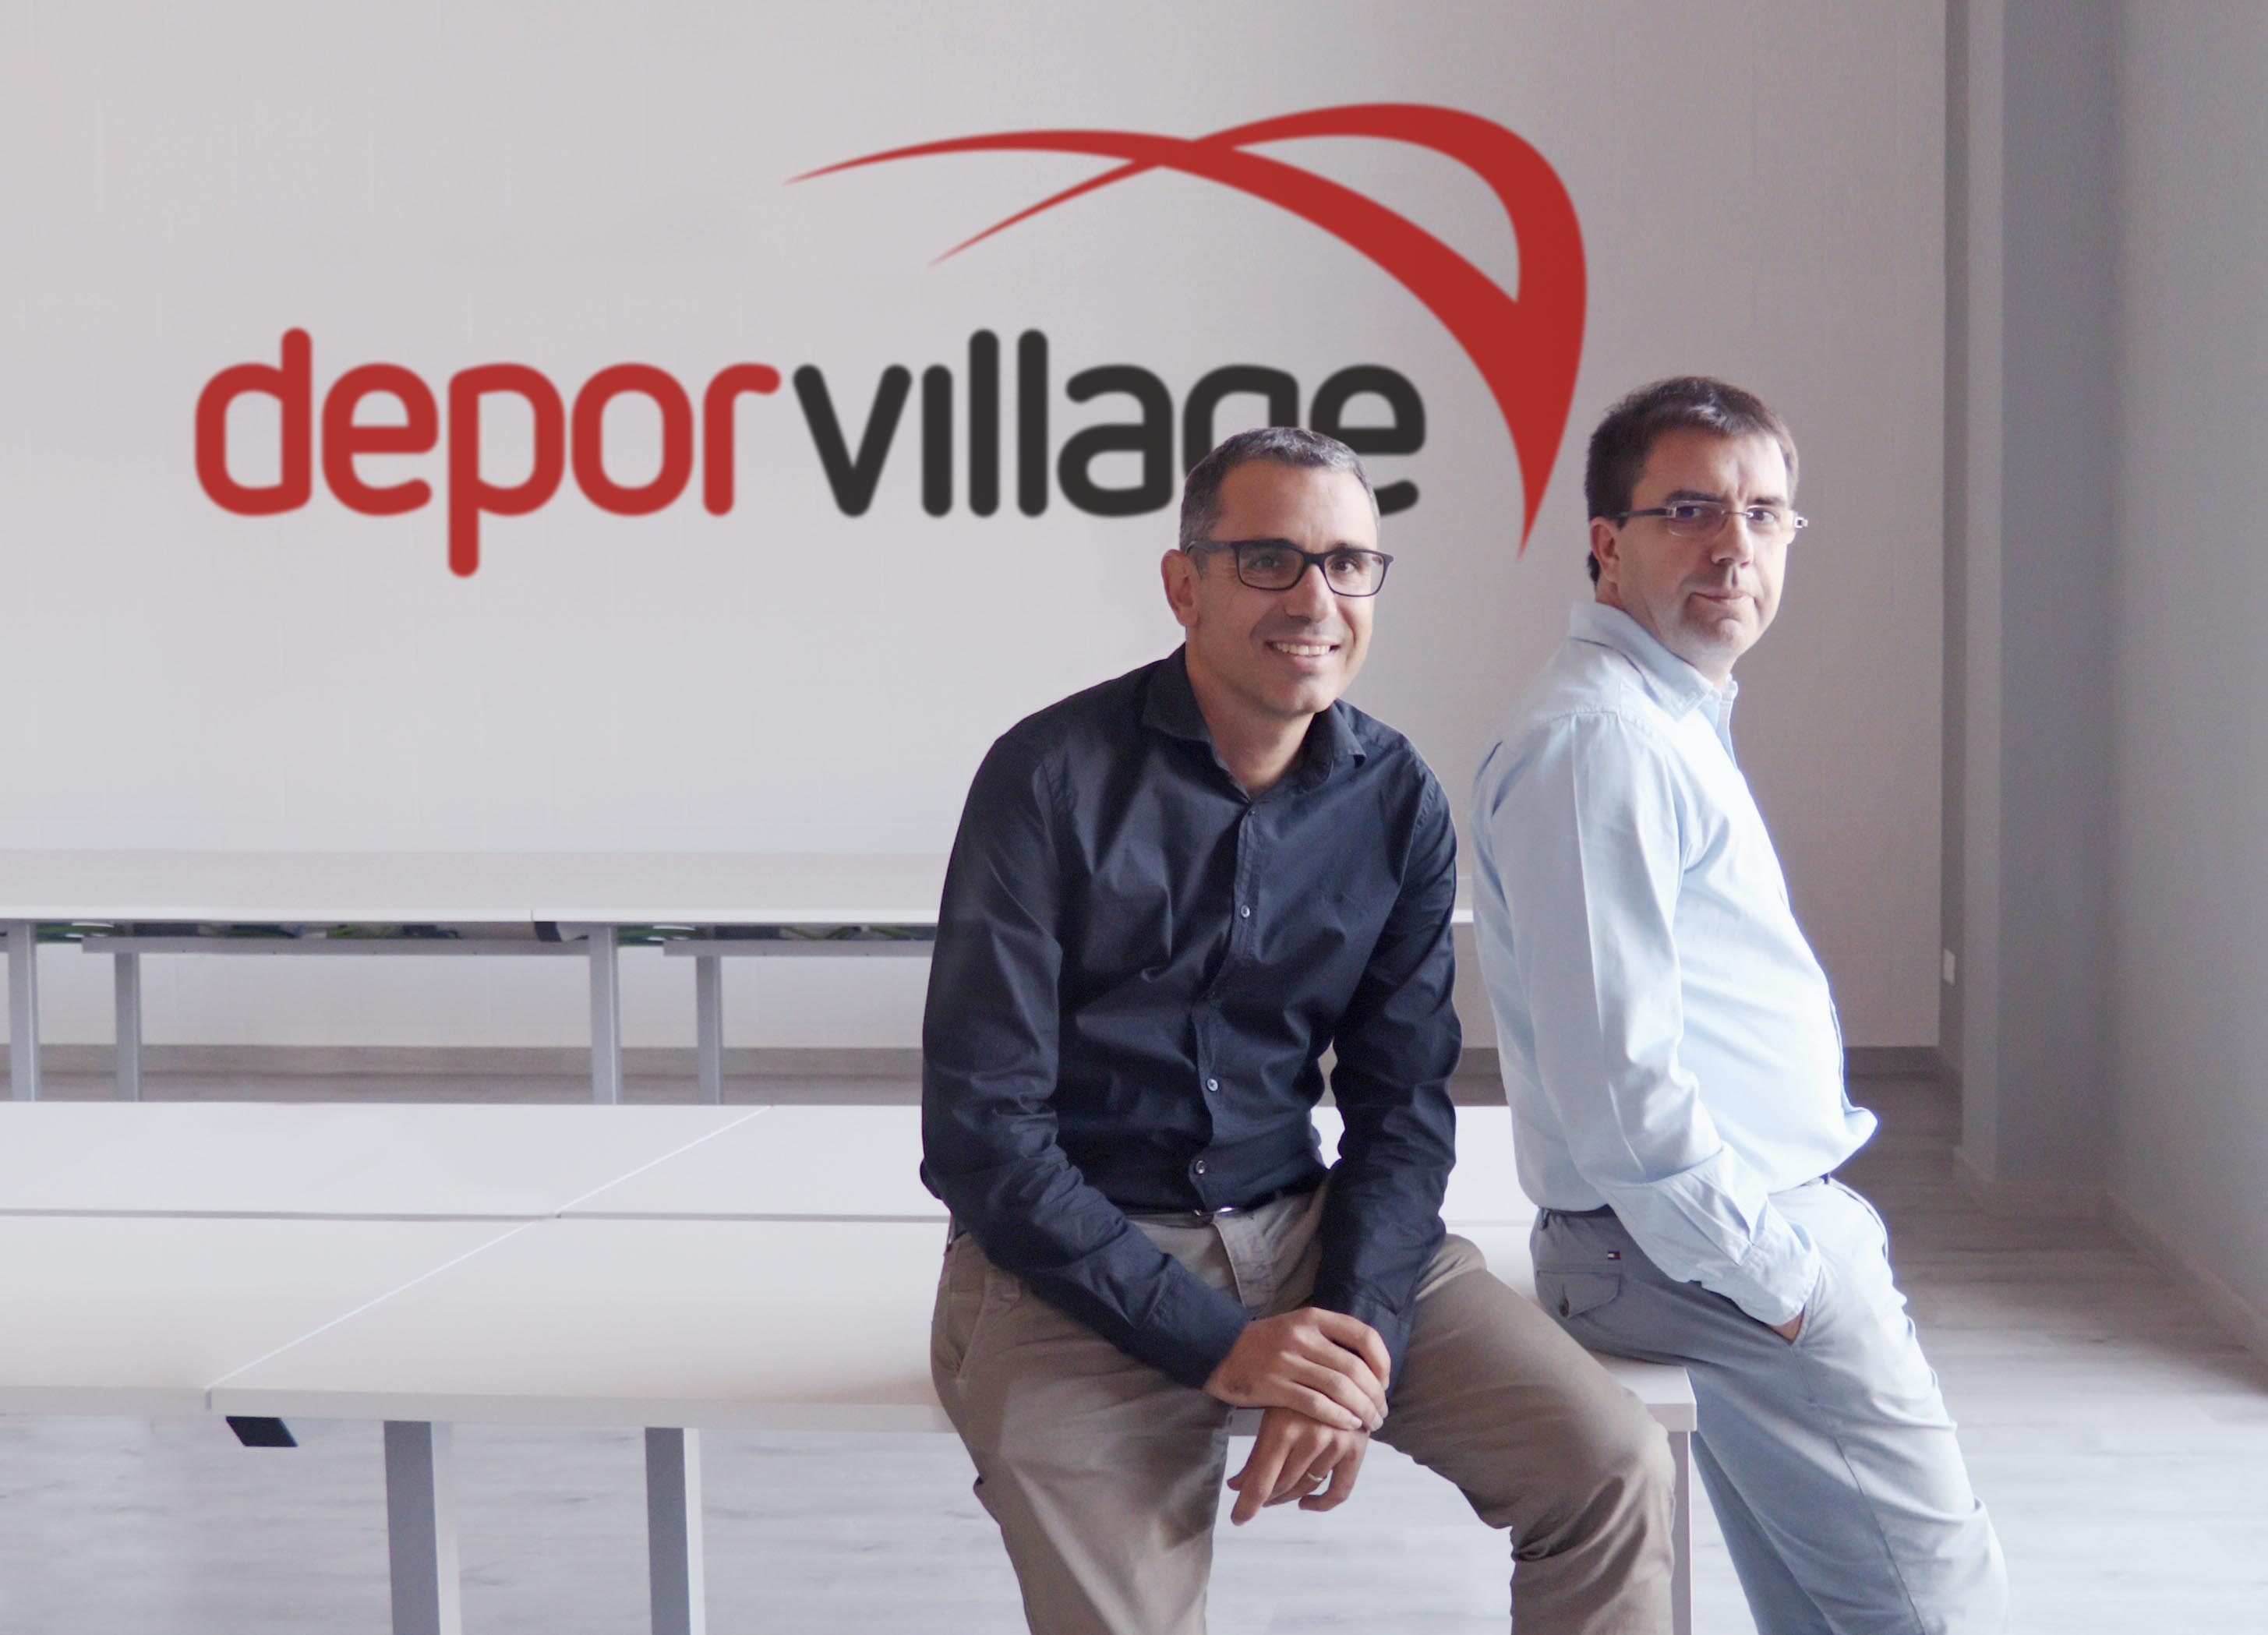 Deporvillage redevient le e-commerce sportif qui se développe le plus en Europe selon le Financial Times